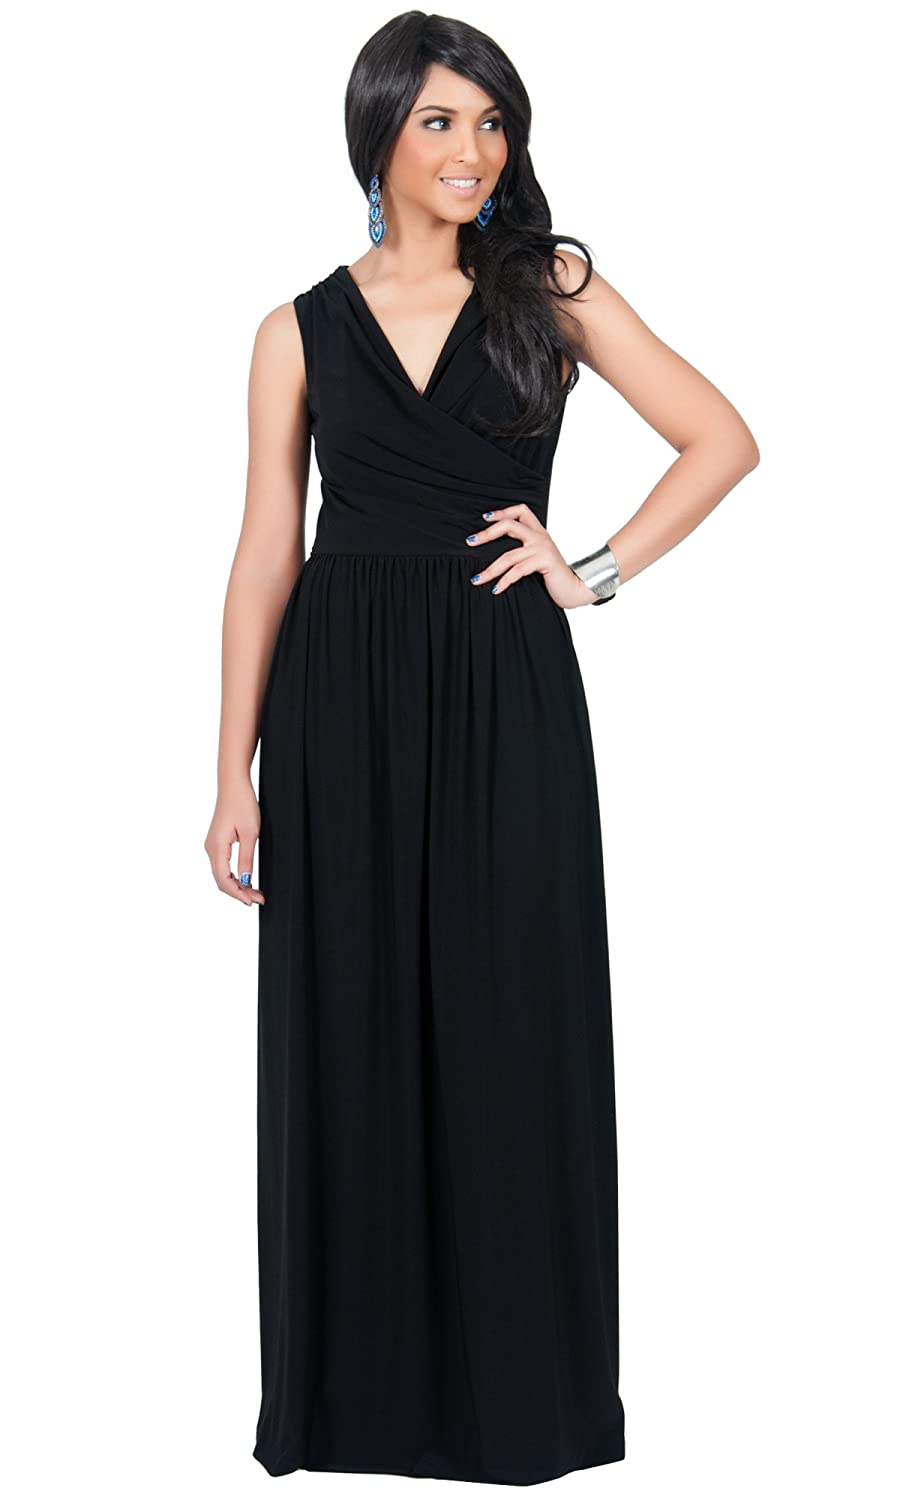 ea3ce4b5883c GARMENT CARE - Hand or machine washable. Can be dry-cleaned if desired.  PLUS SIZE - This great maxi dress design is also available in plus sizes